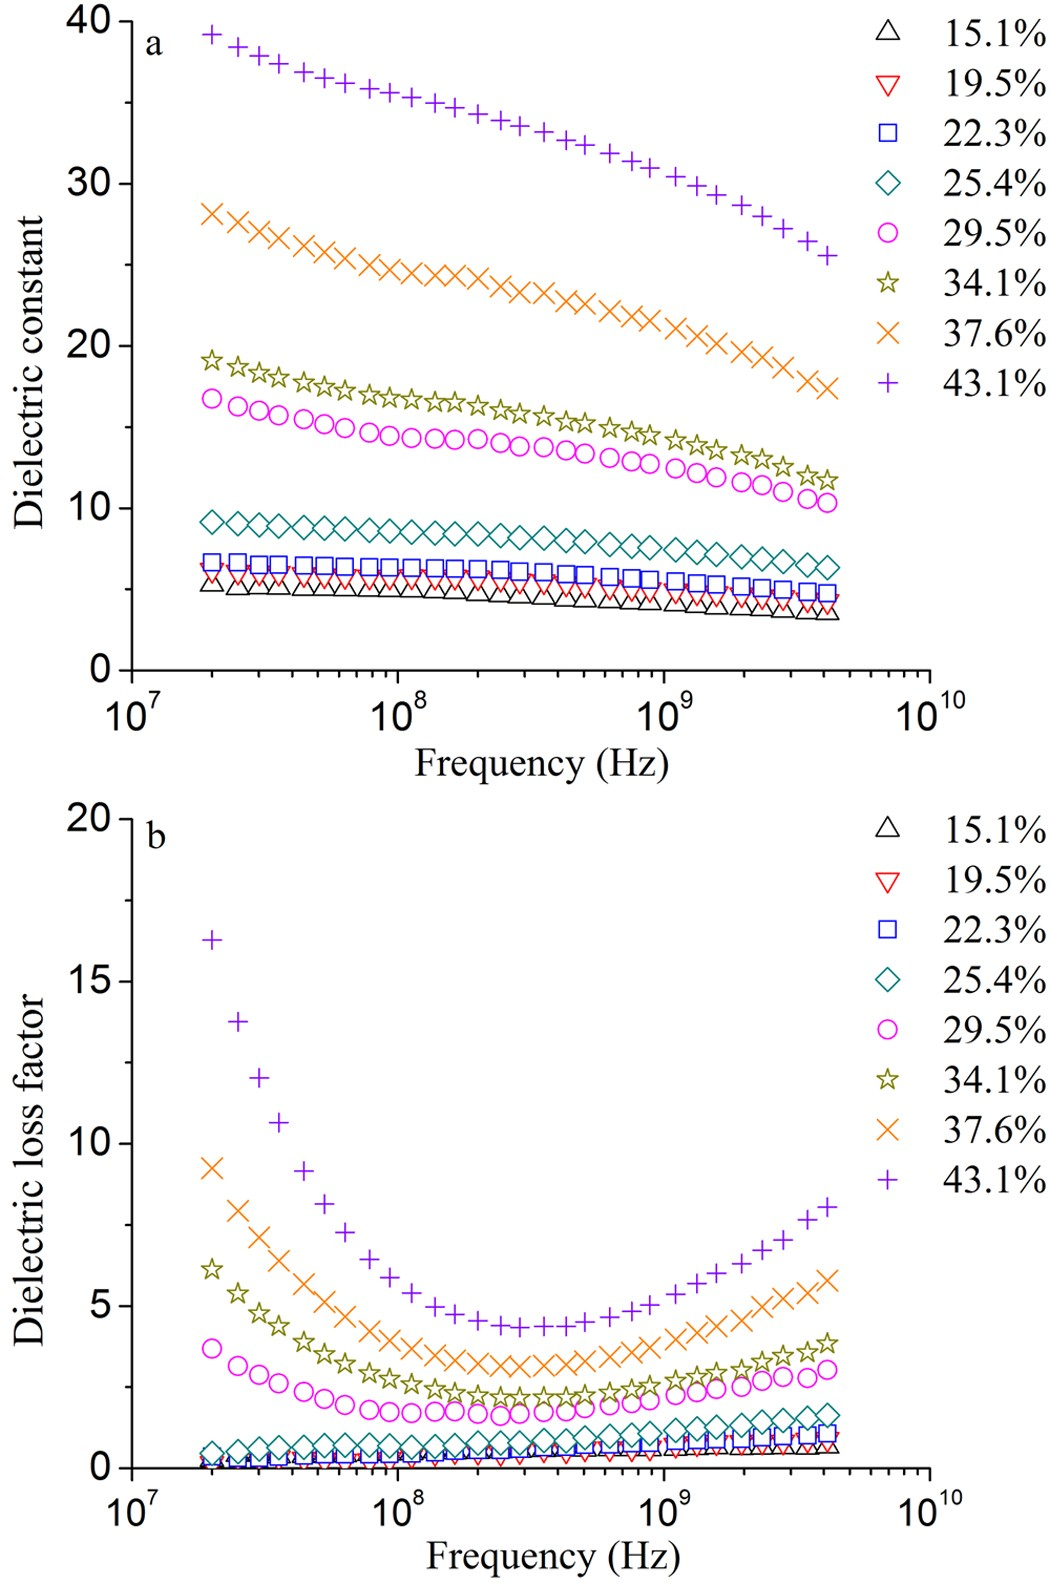 Frequency Moisture Content And Temperature Dependent Dielectric Radio Circuit Design Wiley Series In Microwave Optical Properties Of Potato Starch Related To Drying With Energy